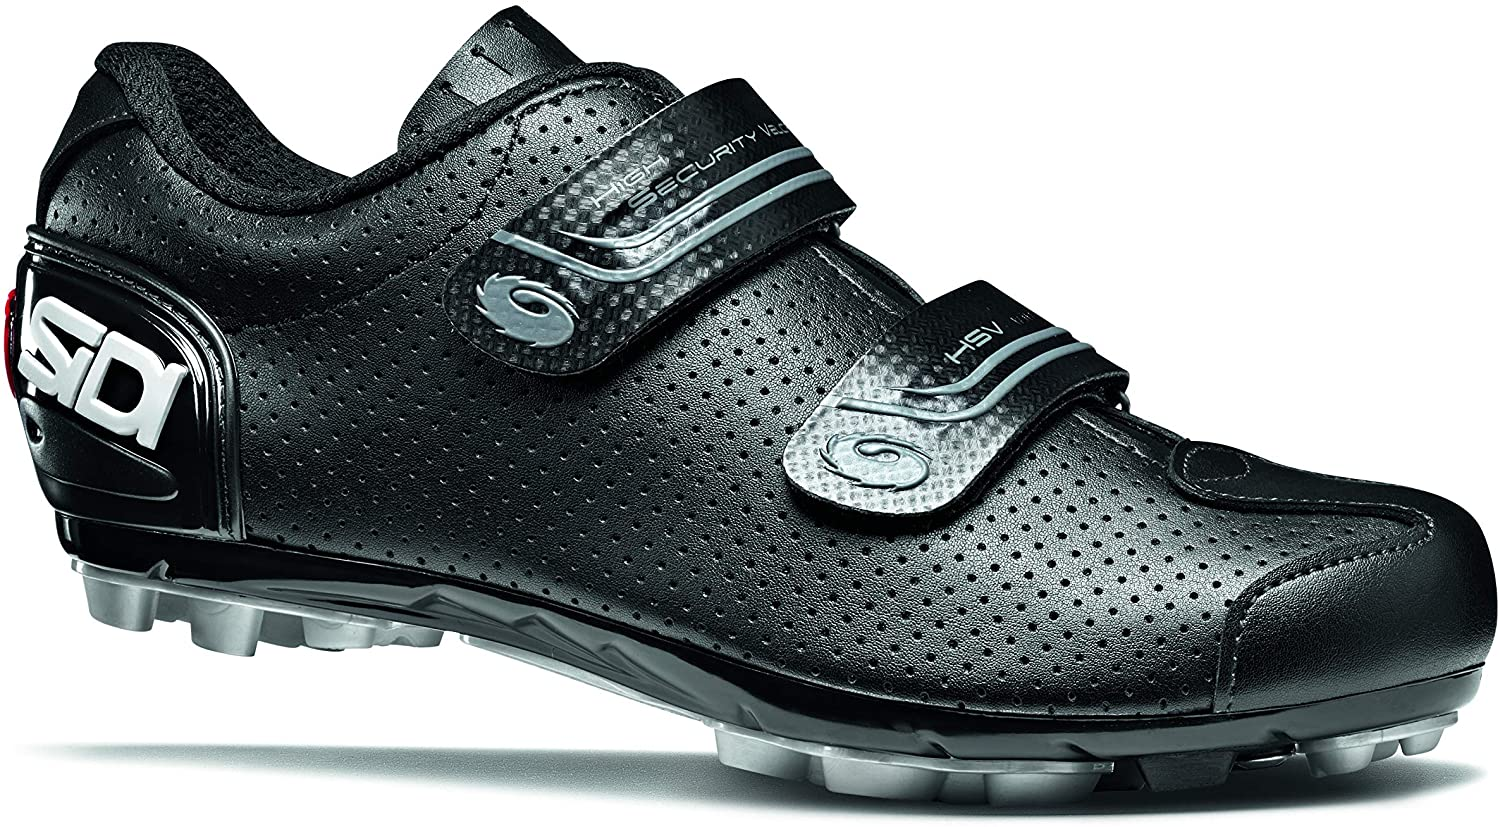 sidi swift air carbon cycling shoes | best indoor cycling shoes